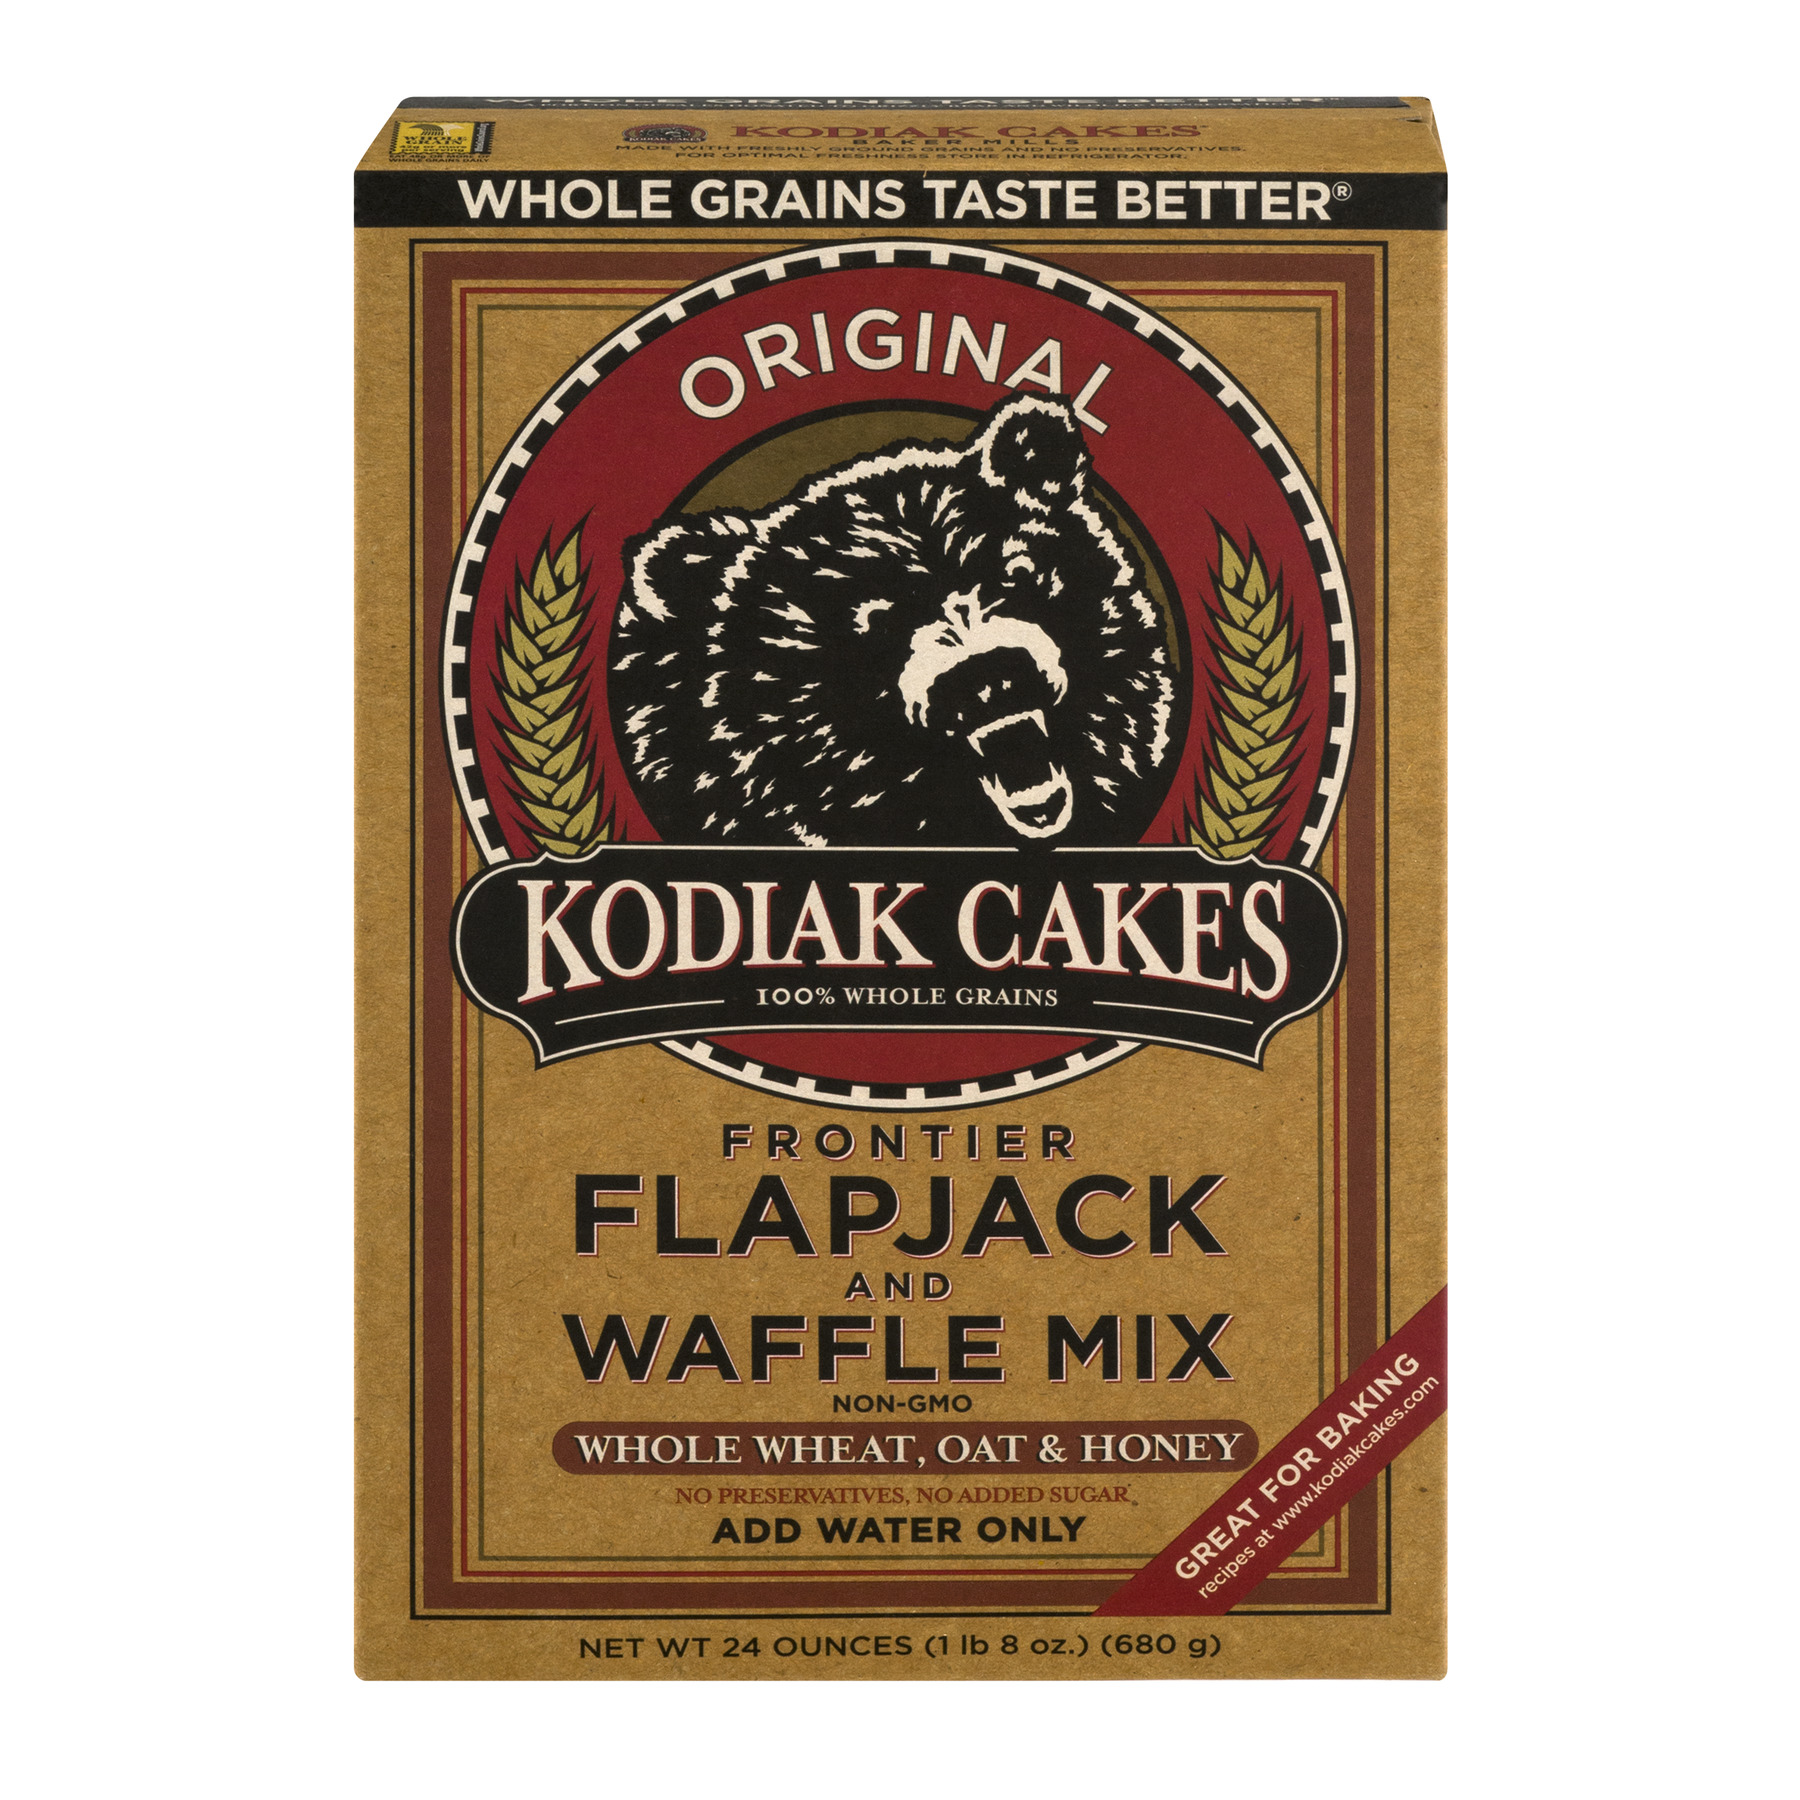 Kodiak Cakes Frontier Flapjack And Waffle Mix Original, 24.0 OZ by Baker Mills Inc